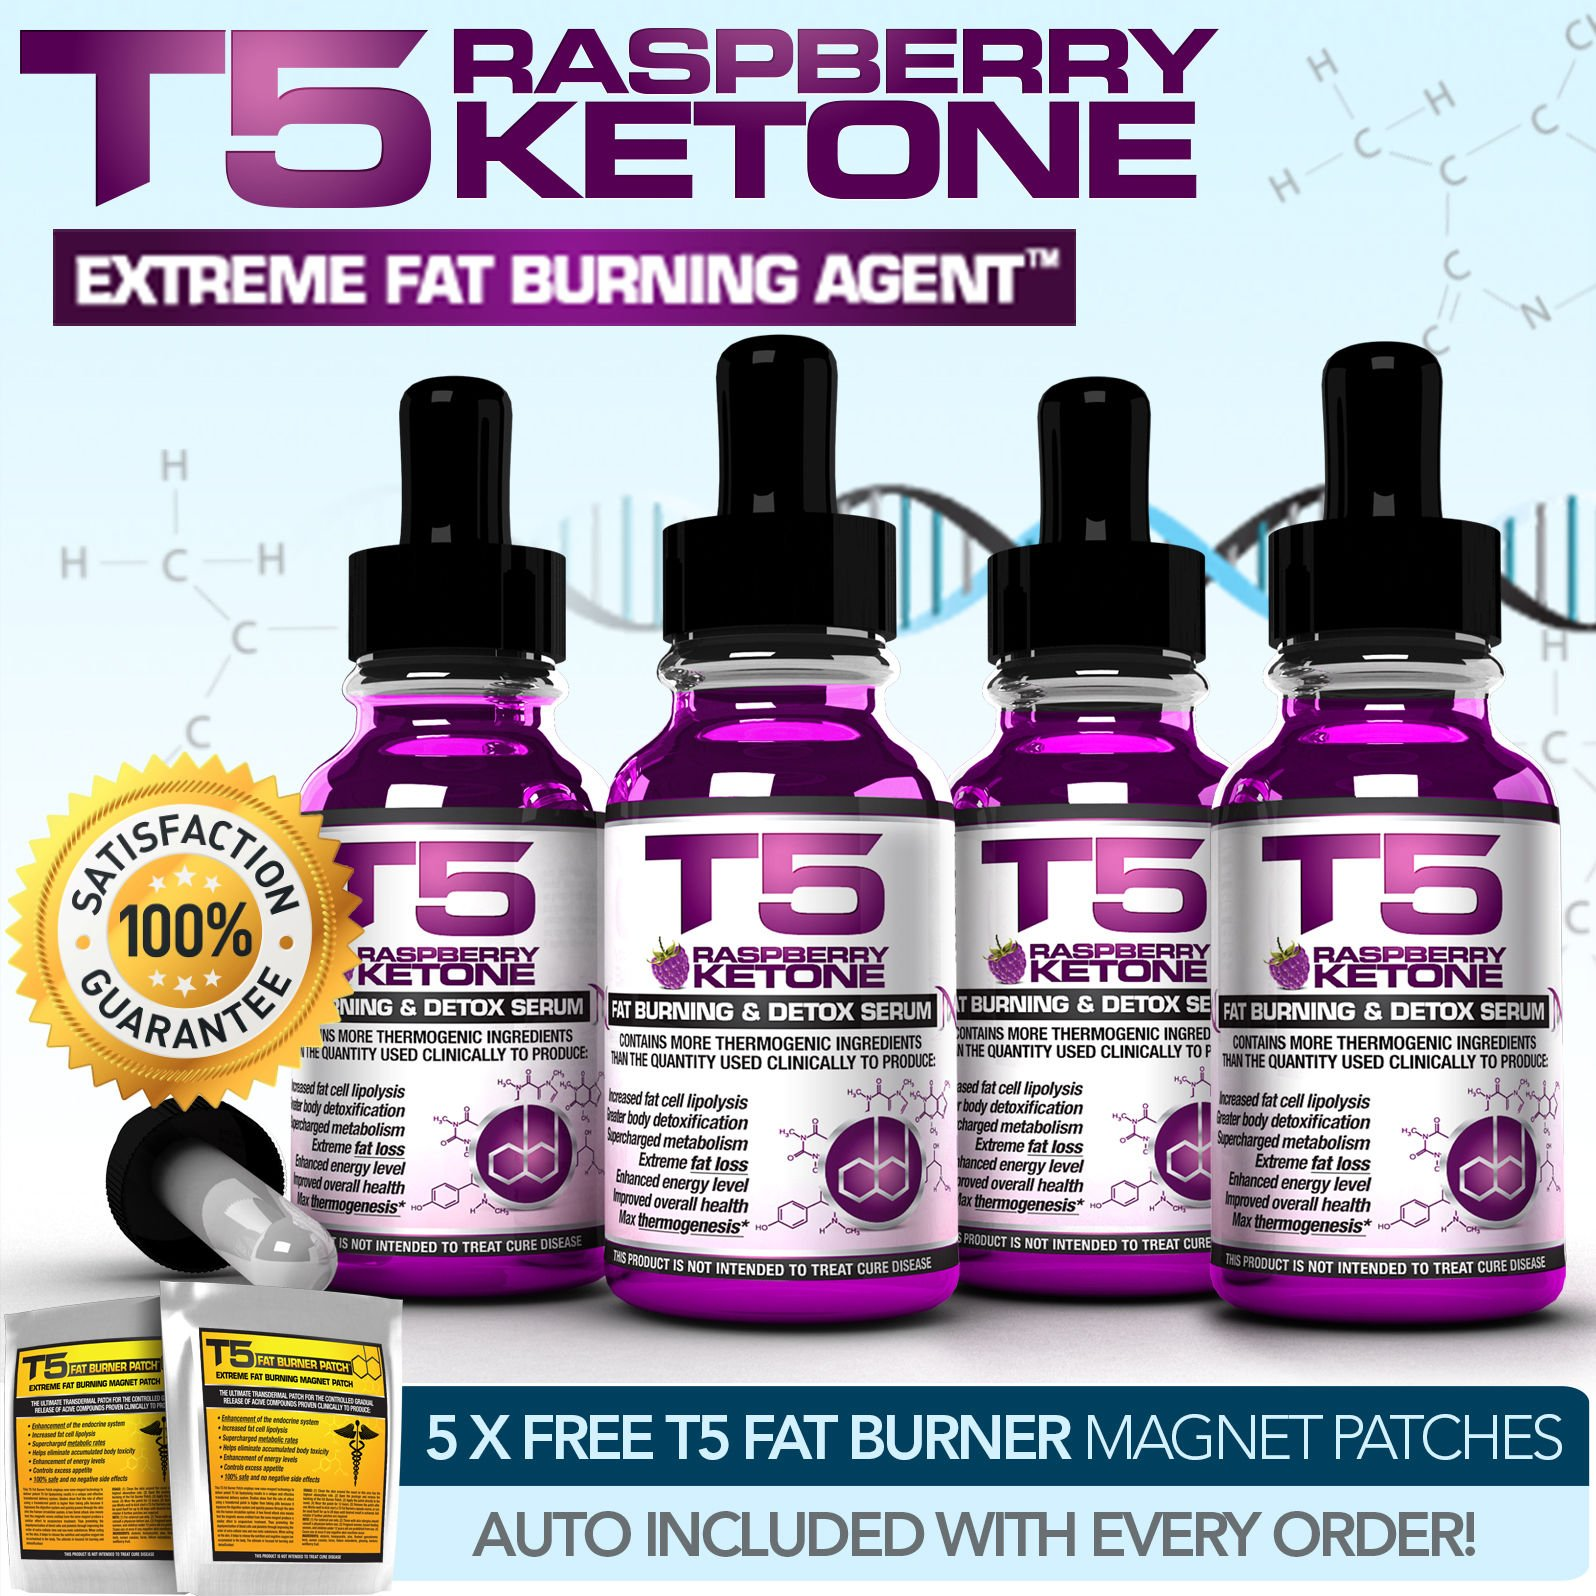 X4 RASPBERRY KETONE SERUM - BETTER THAN DIET / SLIMMING / WEIGHT LOSS PILLS